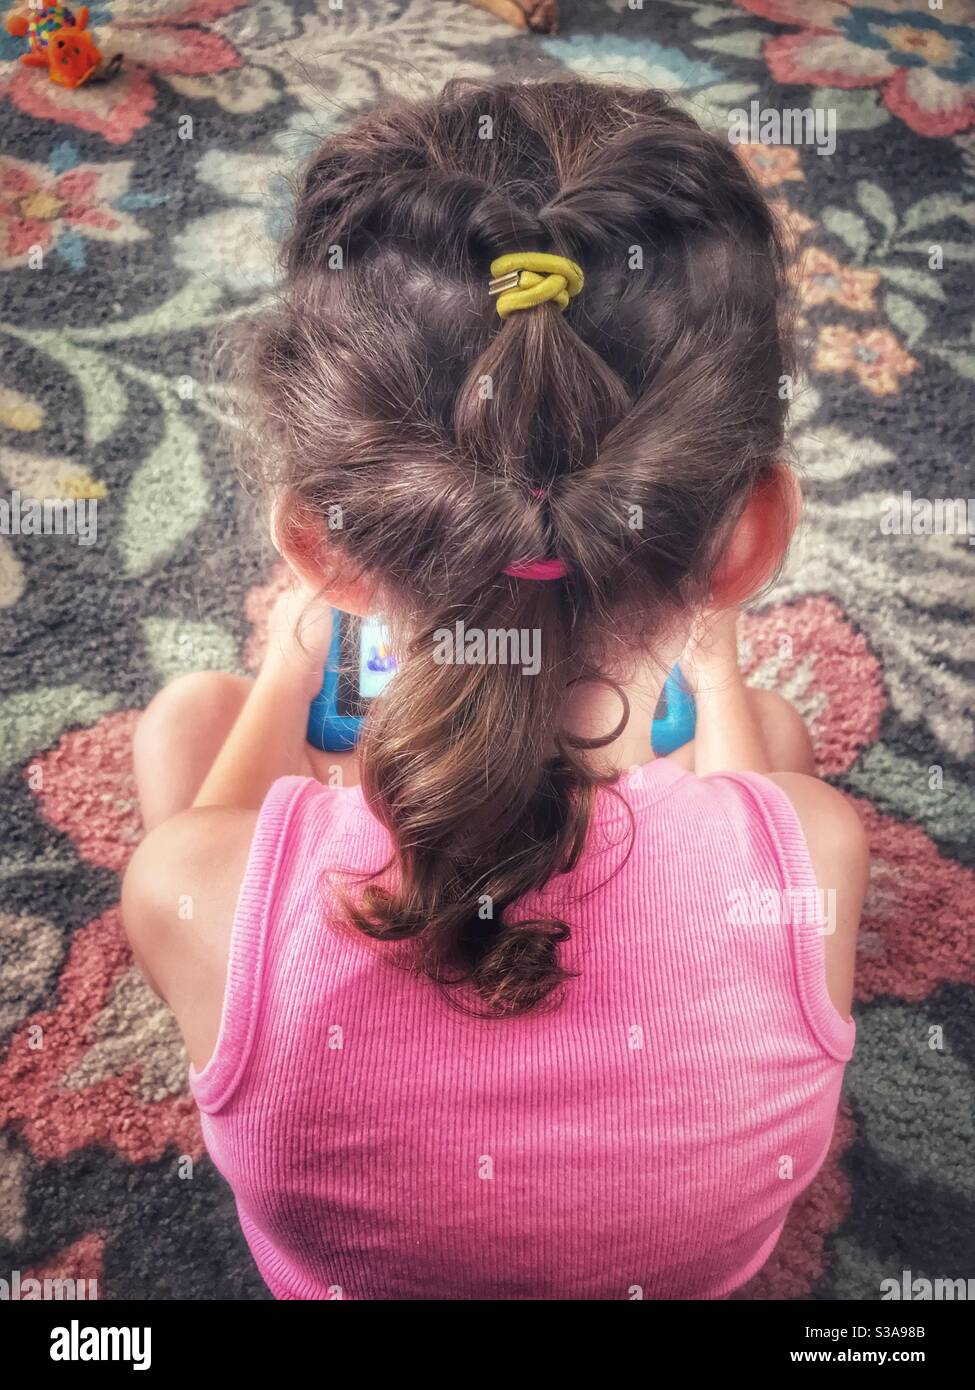 Hairdo Ponytail High Resolution Stock Photography And Images Alamy